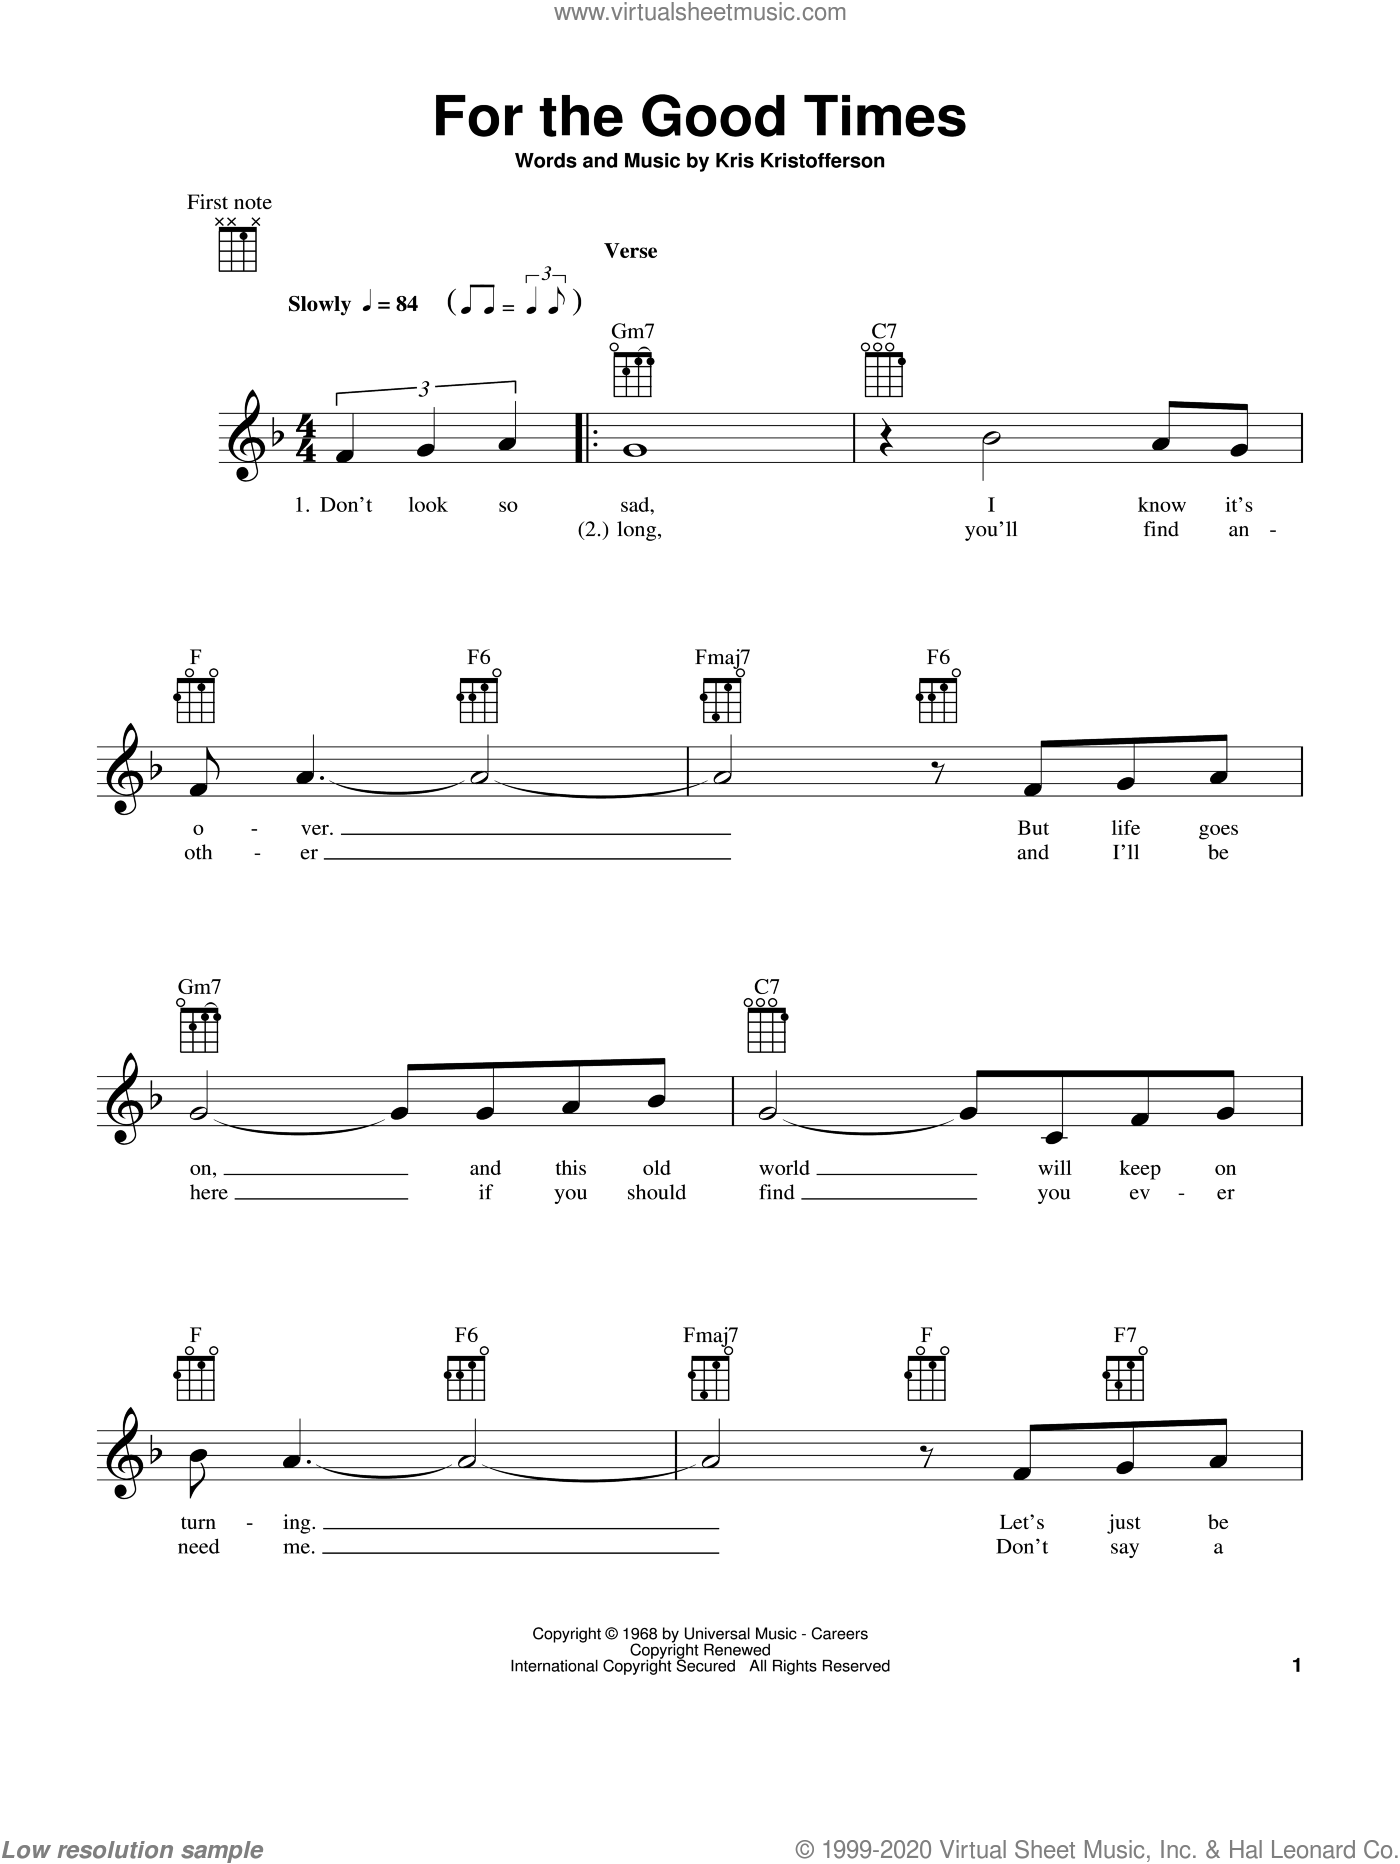 For The Good Times sheet music for ukulele by Kris Kristofferson